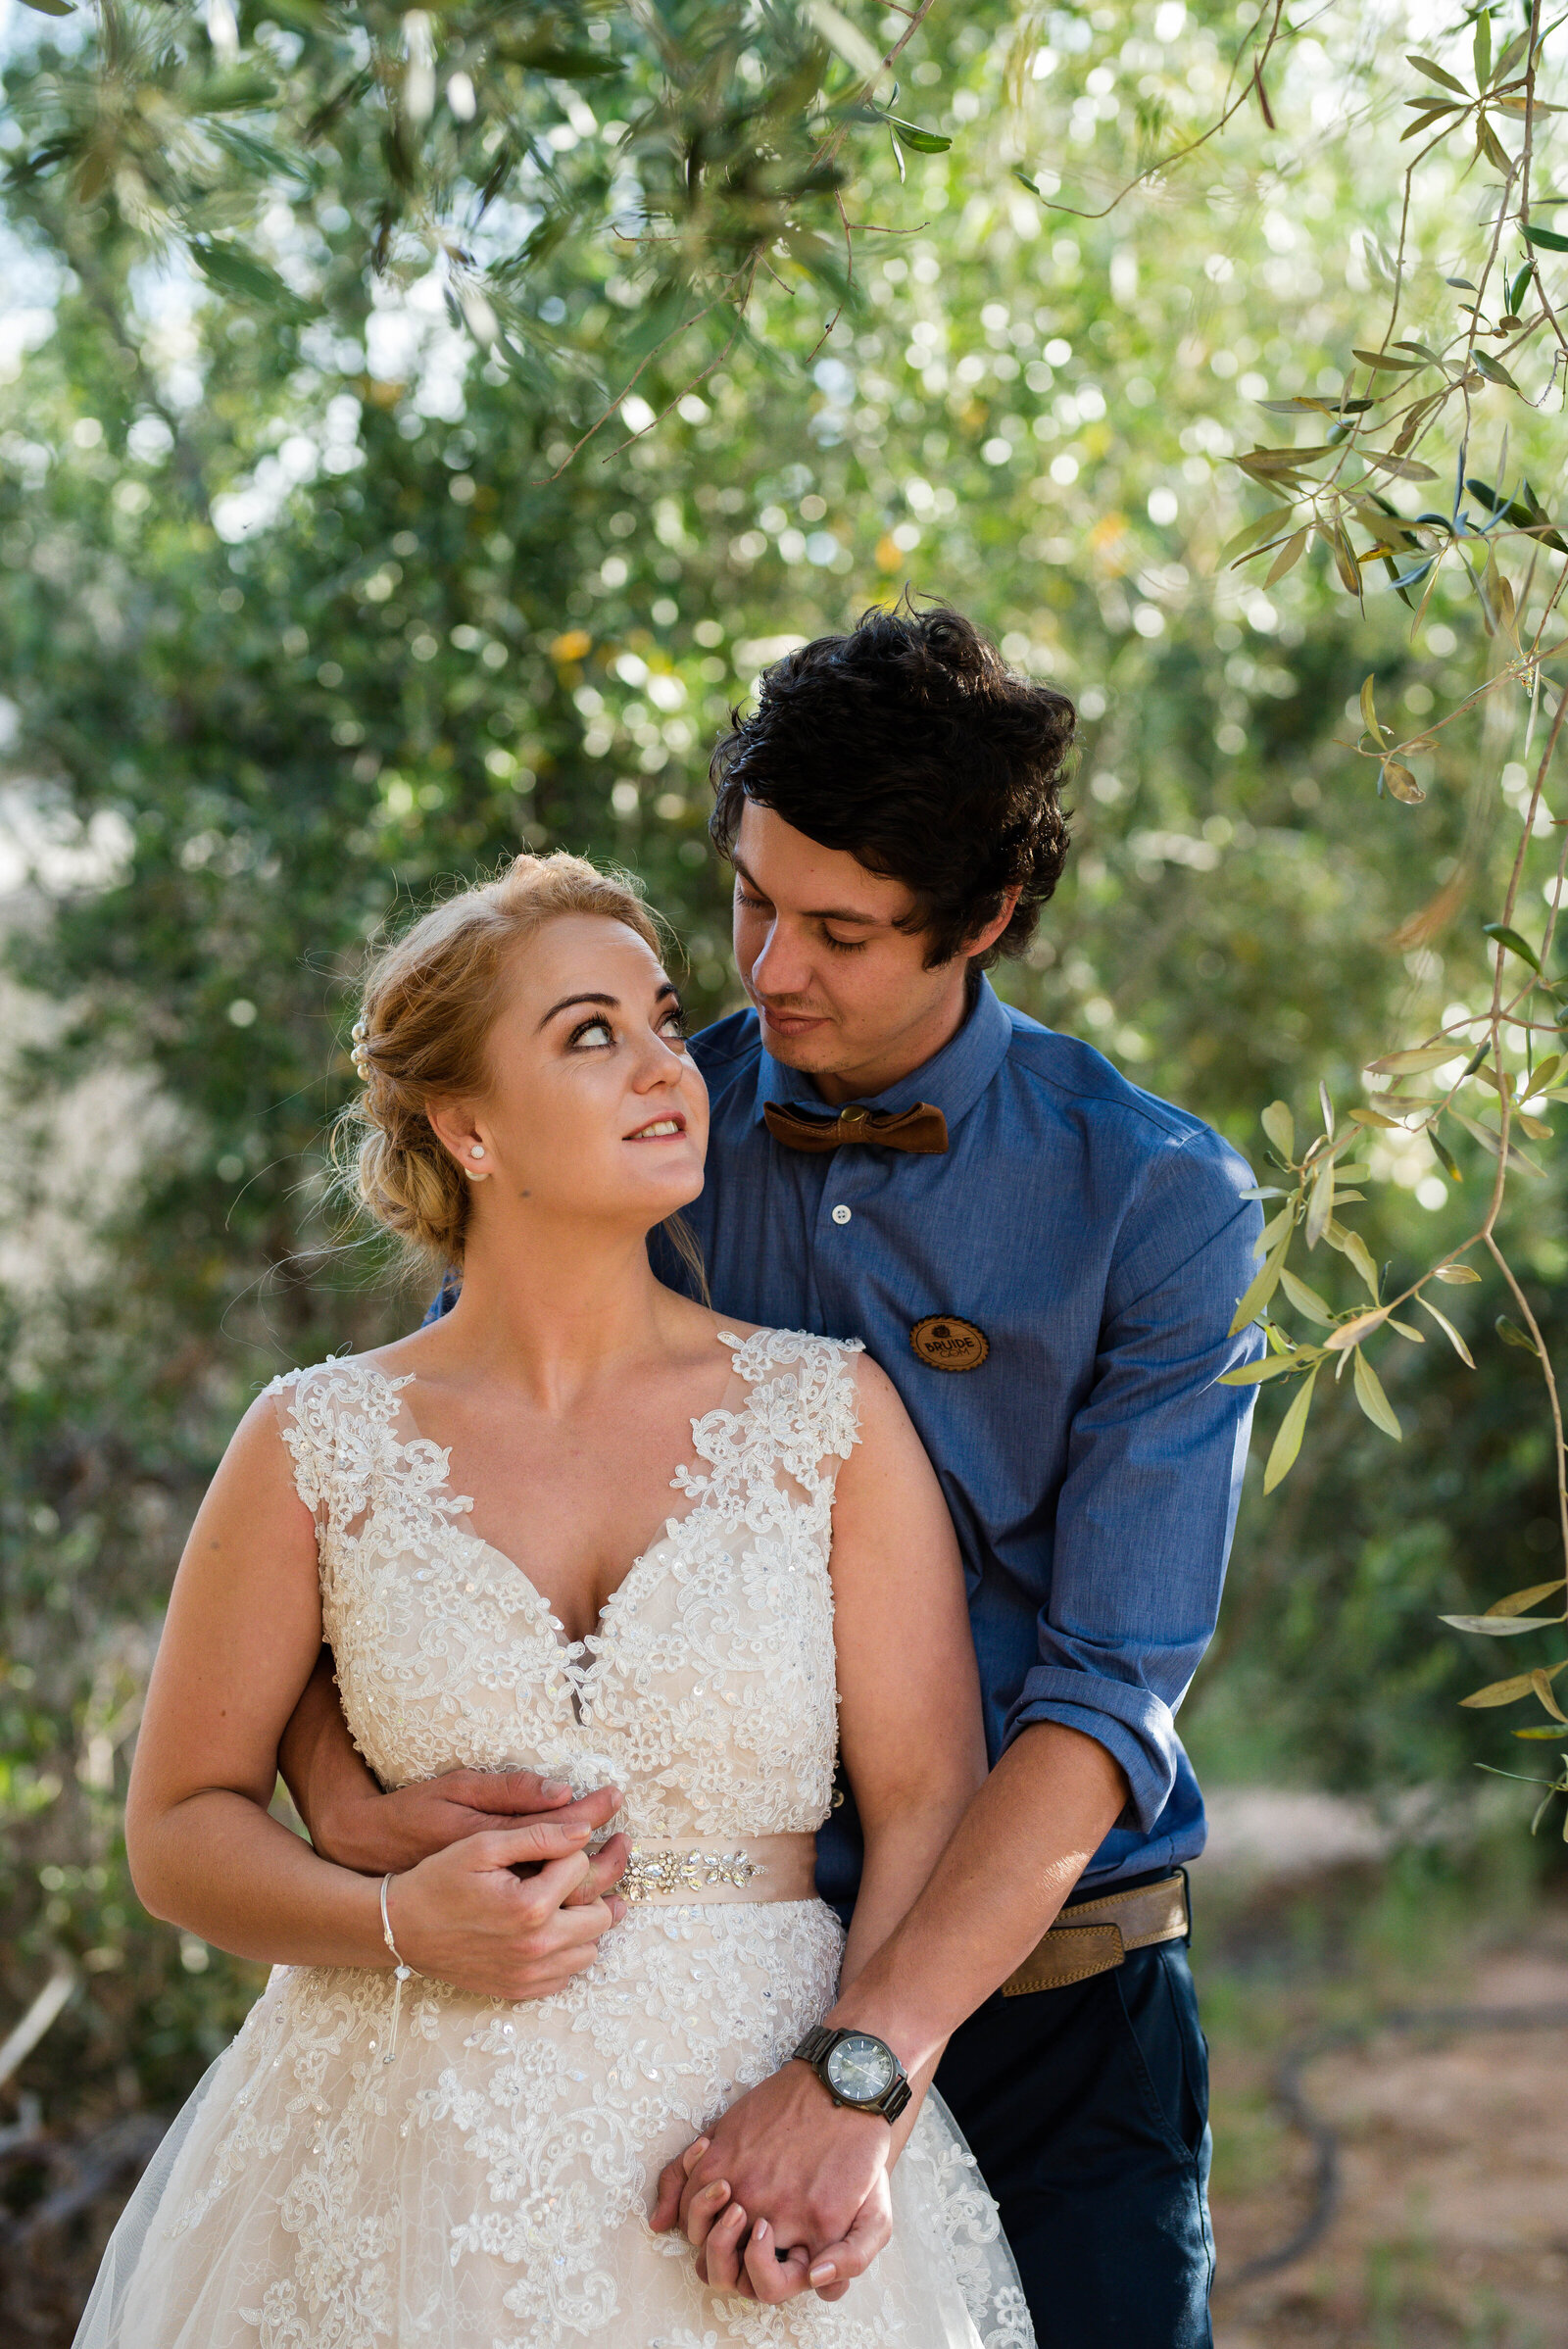 Wedding Photographer + Cape Town venue +Elri Photography+ Weddingdress (22)